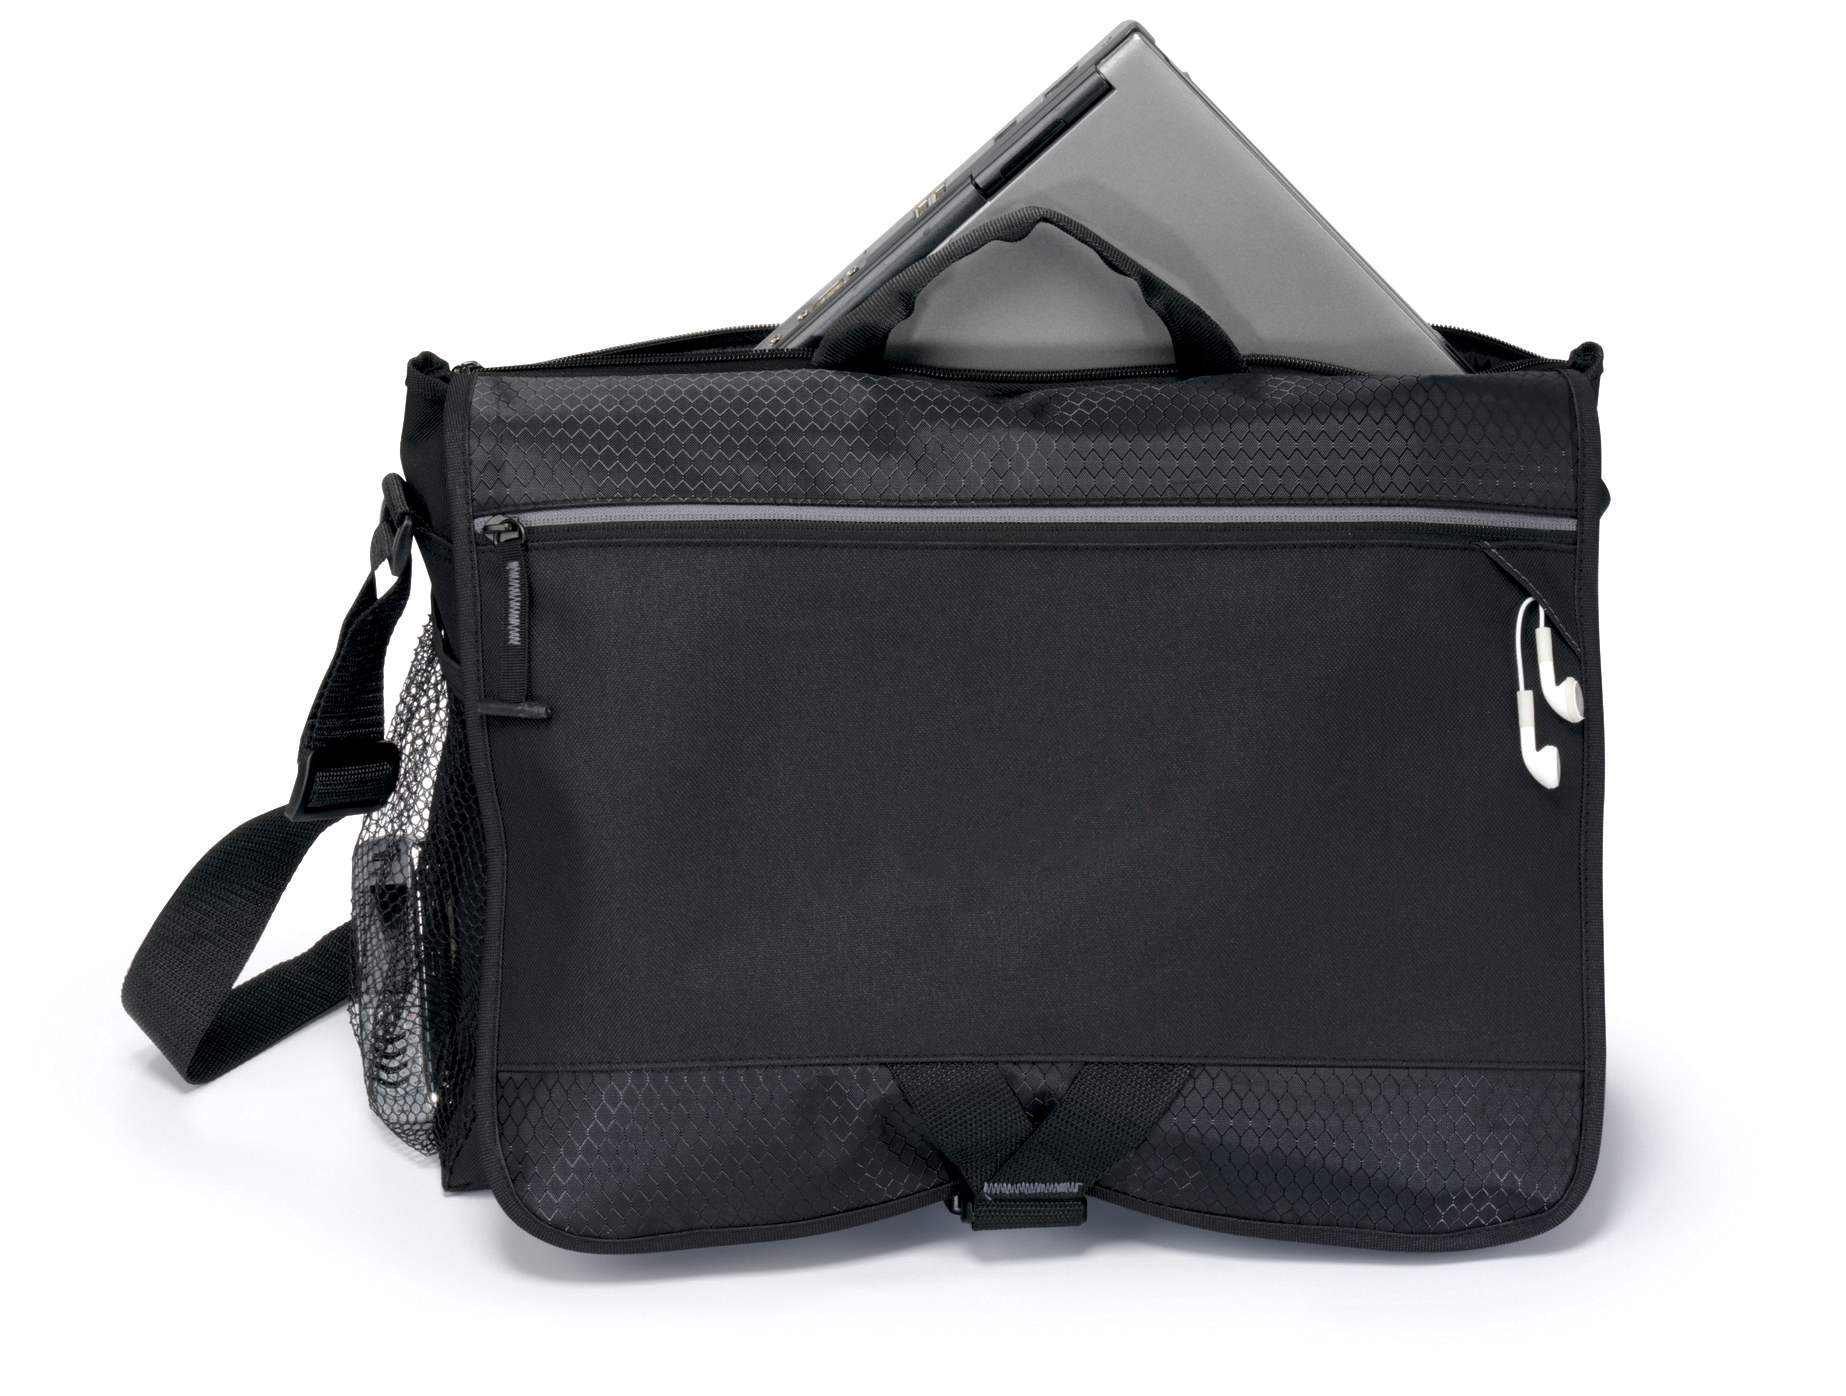 Gemline 2155 - Focus Computer Messenger Bag